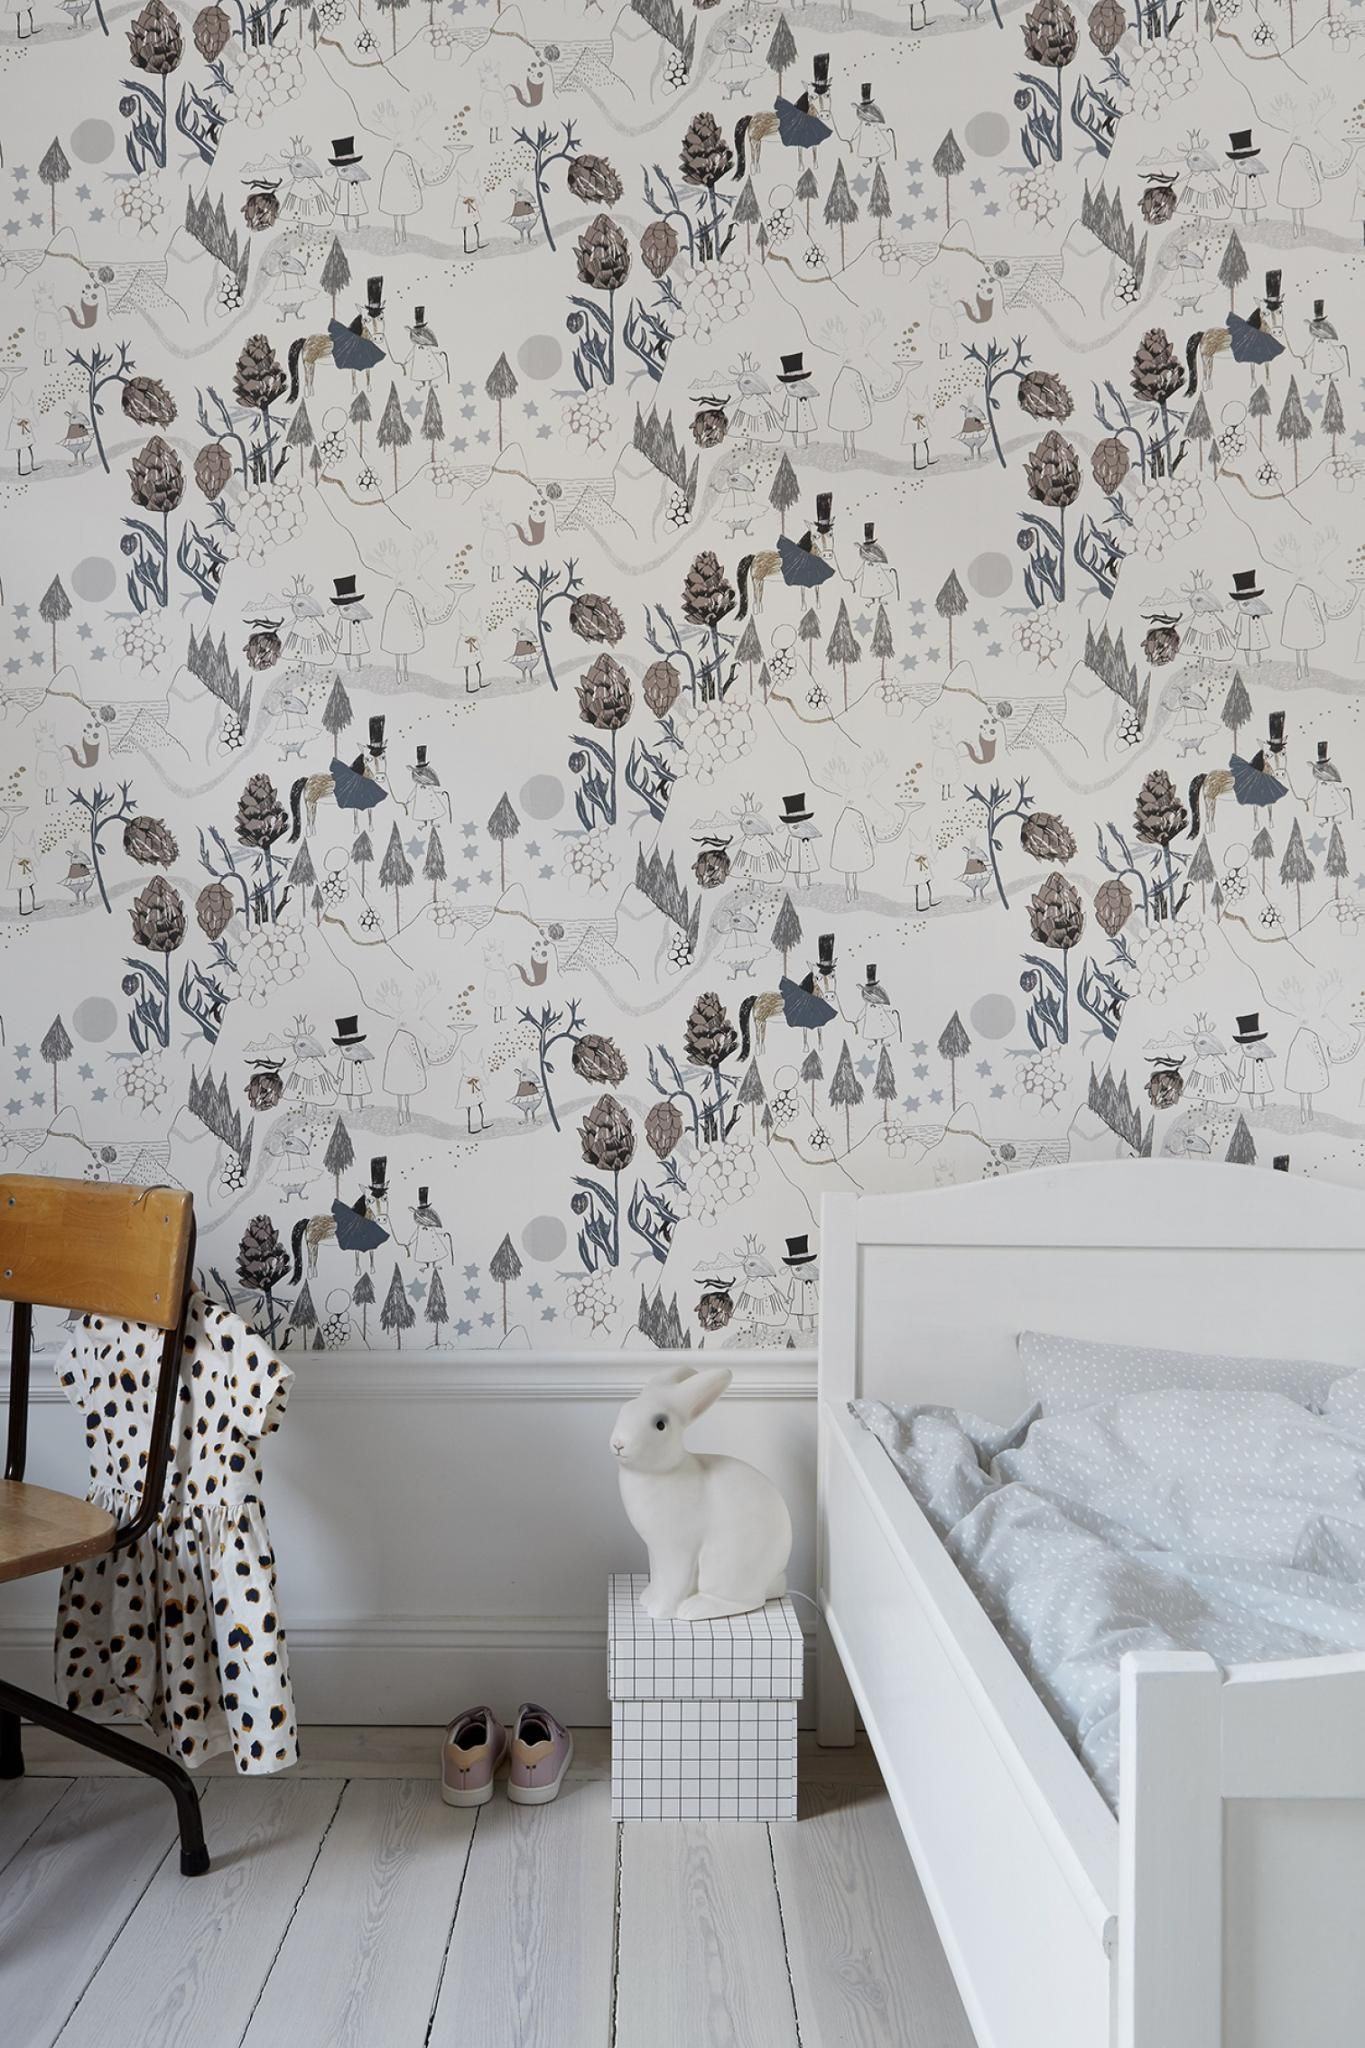 Leuk Behang Kinderkamer.Leuke Kinderkamer Met Leuk Behang Wallcoverings Kids Room